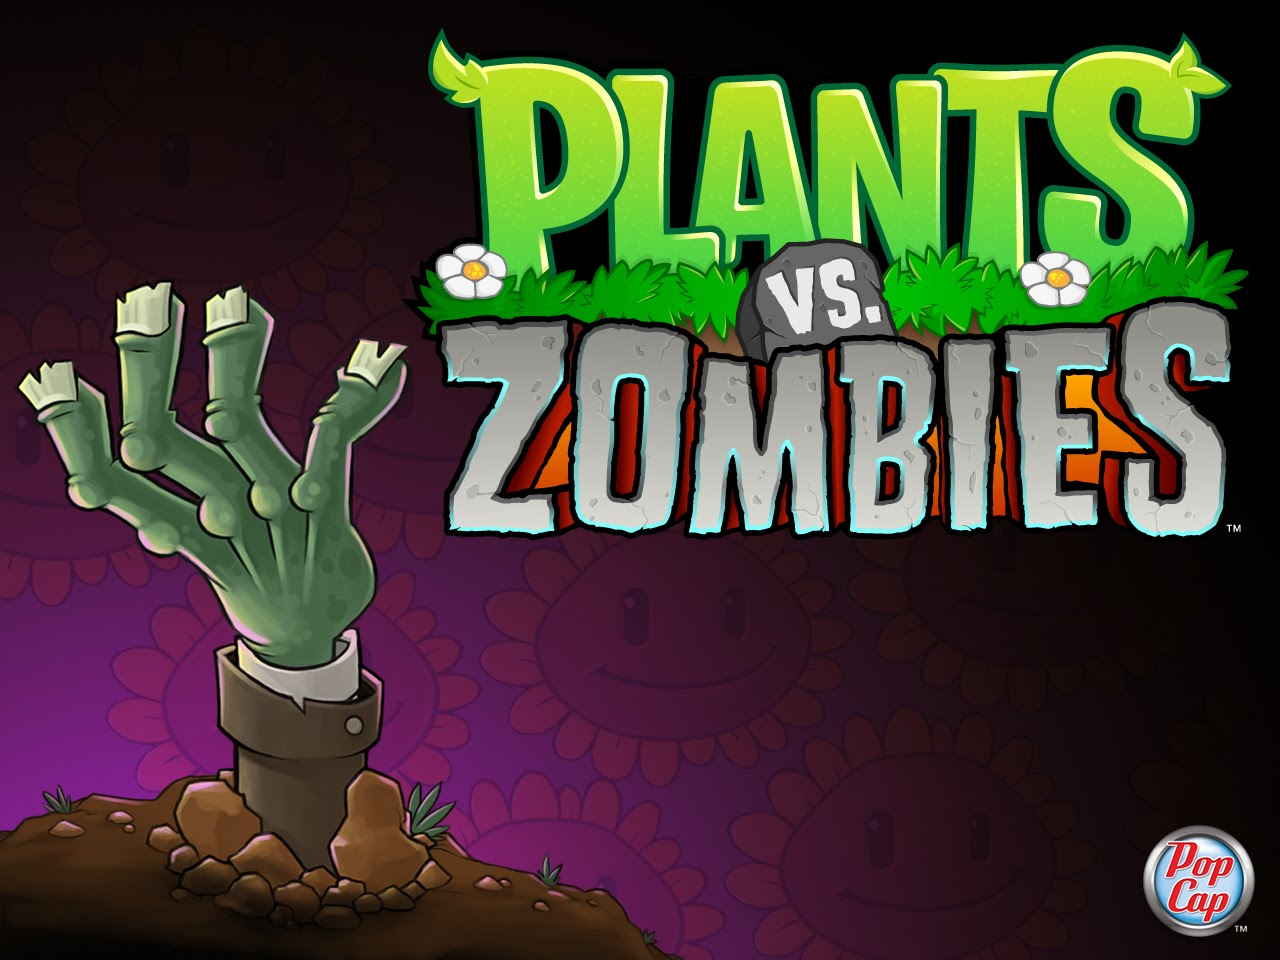 Plantas vs. zombies goty [MF]